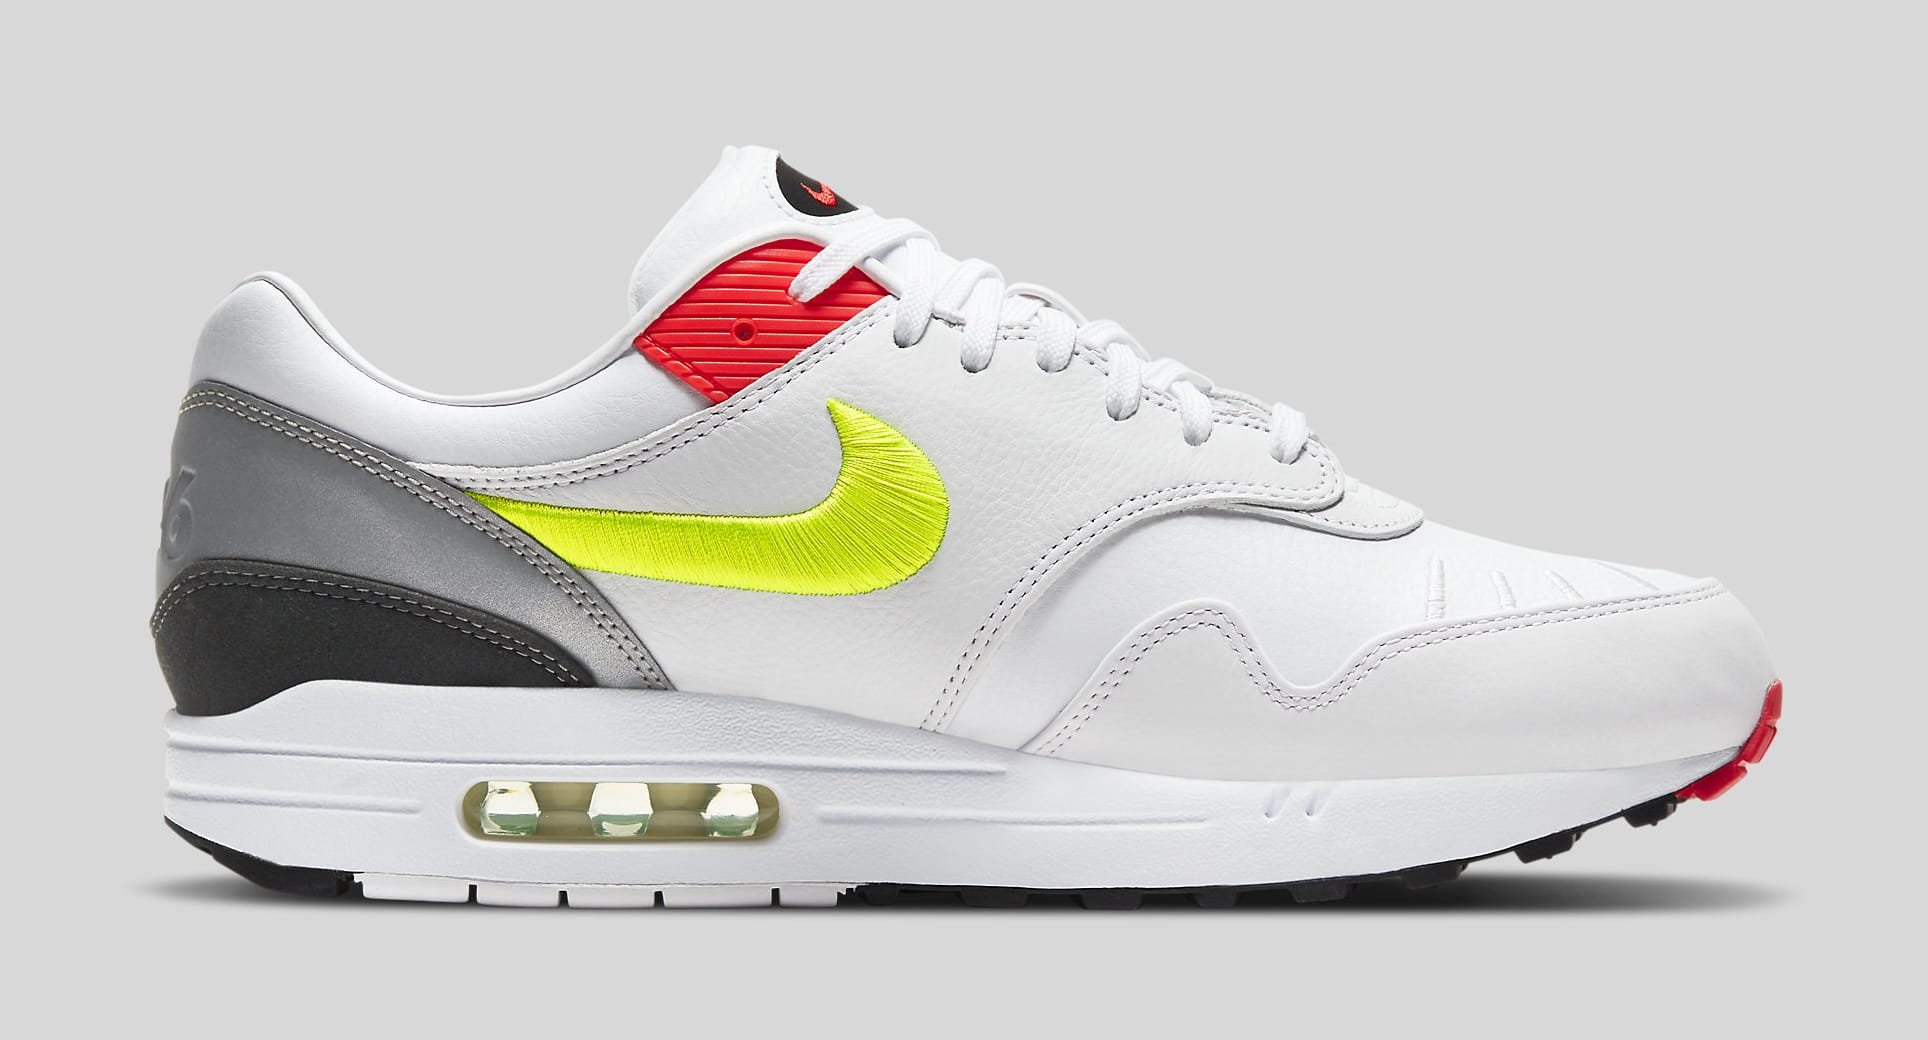 Nike Air Max 1 'Evolutions of Icons' CW6541-100 Medial